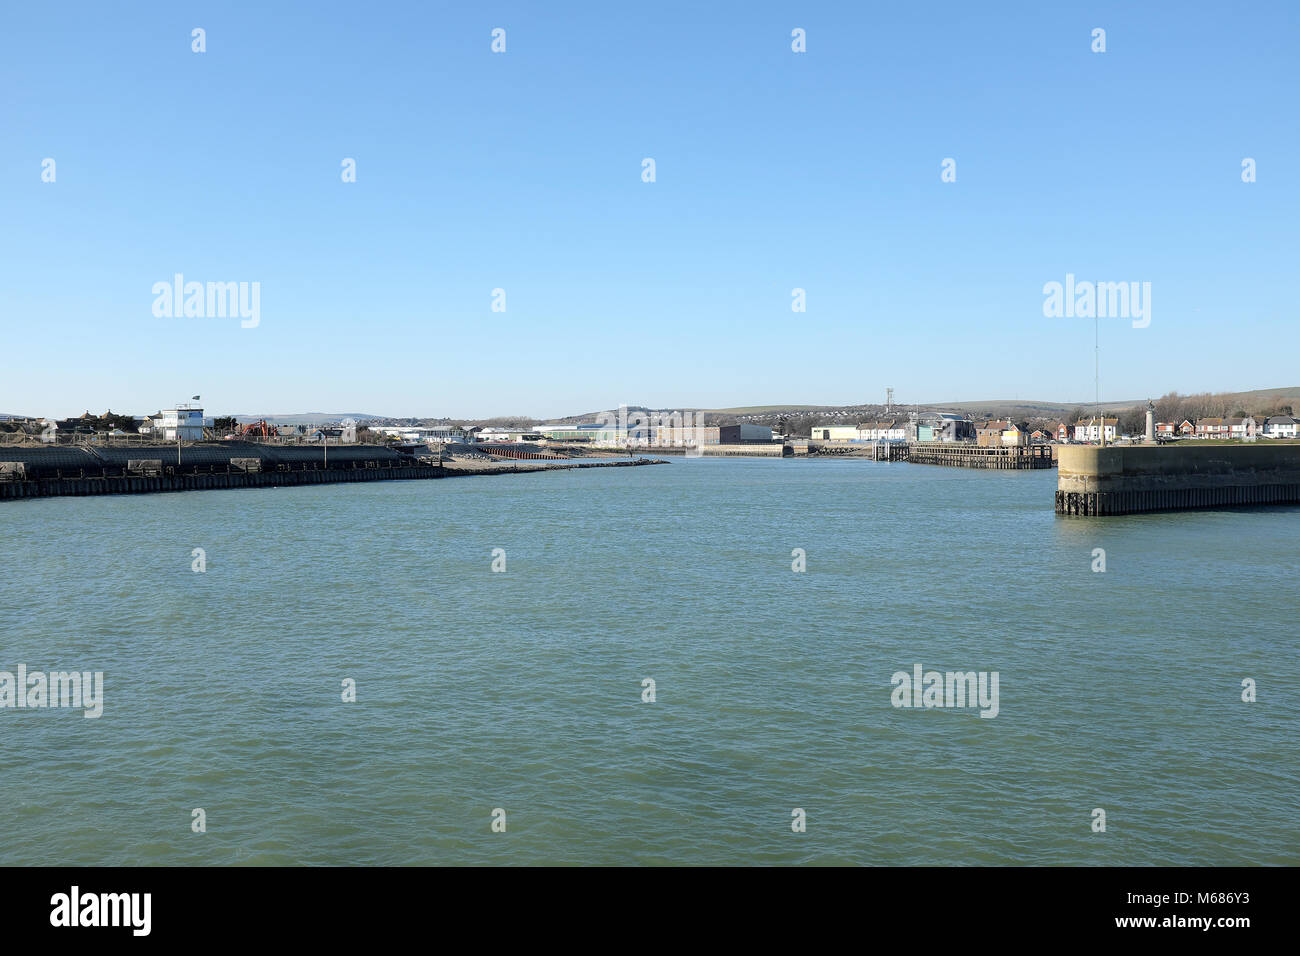 Shoreham Port, West Sussex, England. View into the Western Harbour Arm. Stock Photo